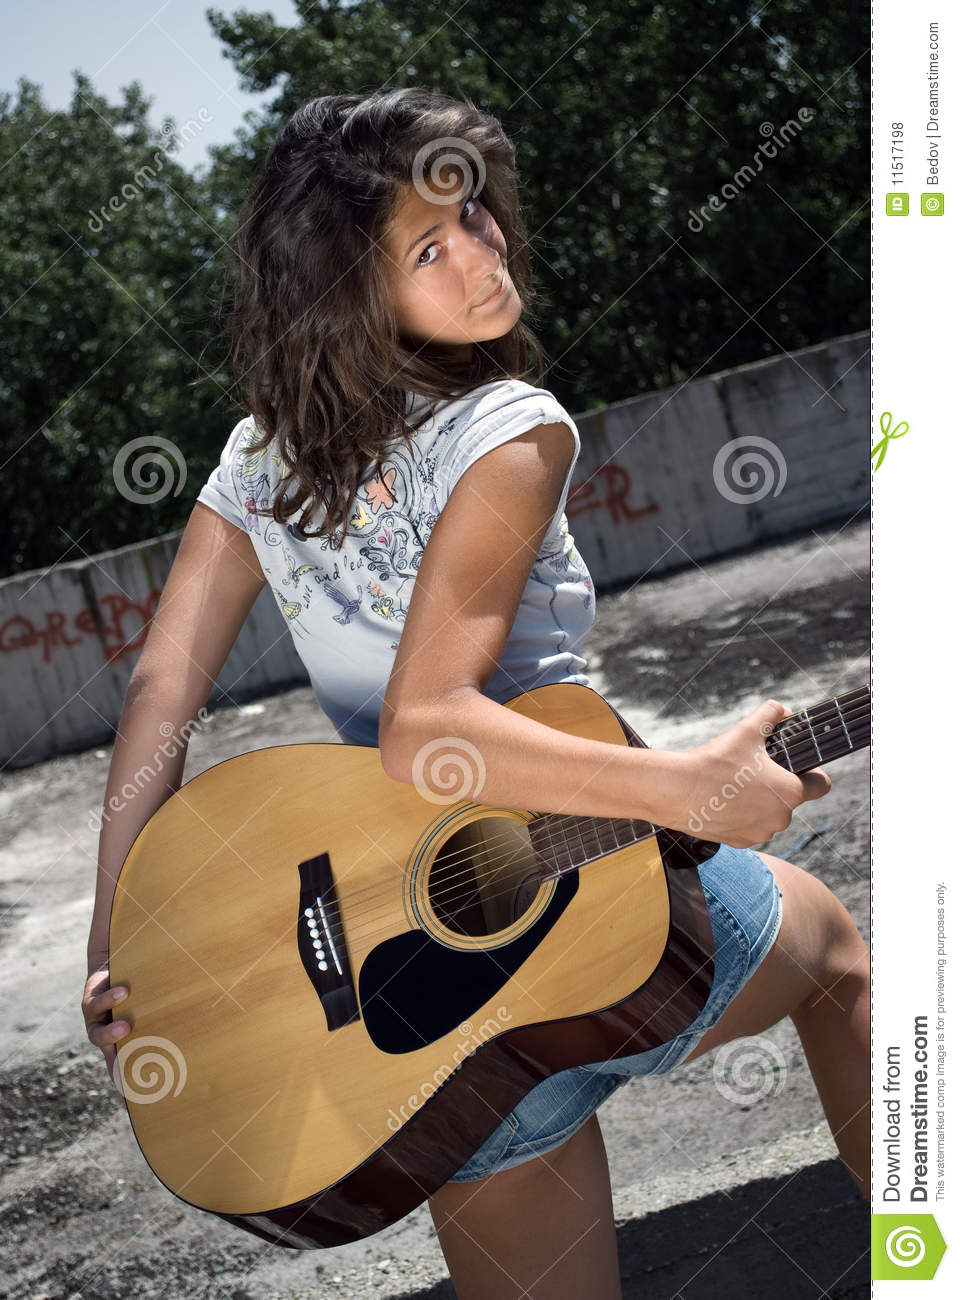 Cute girl holding guitar